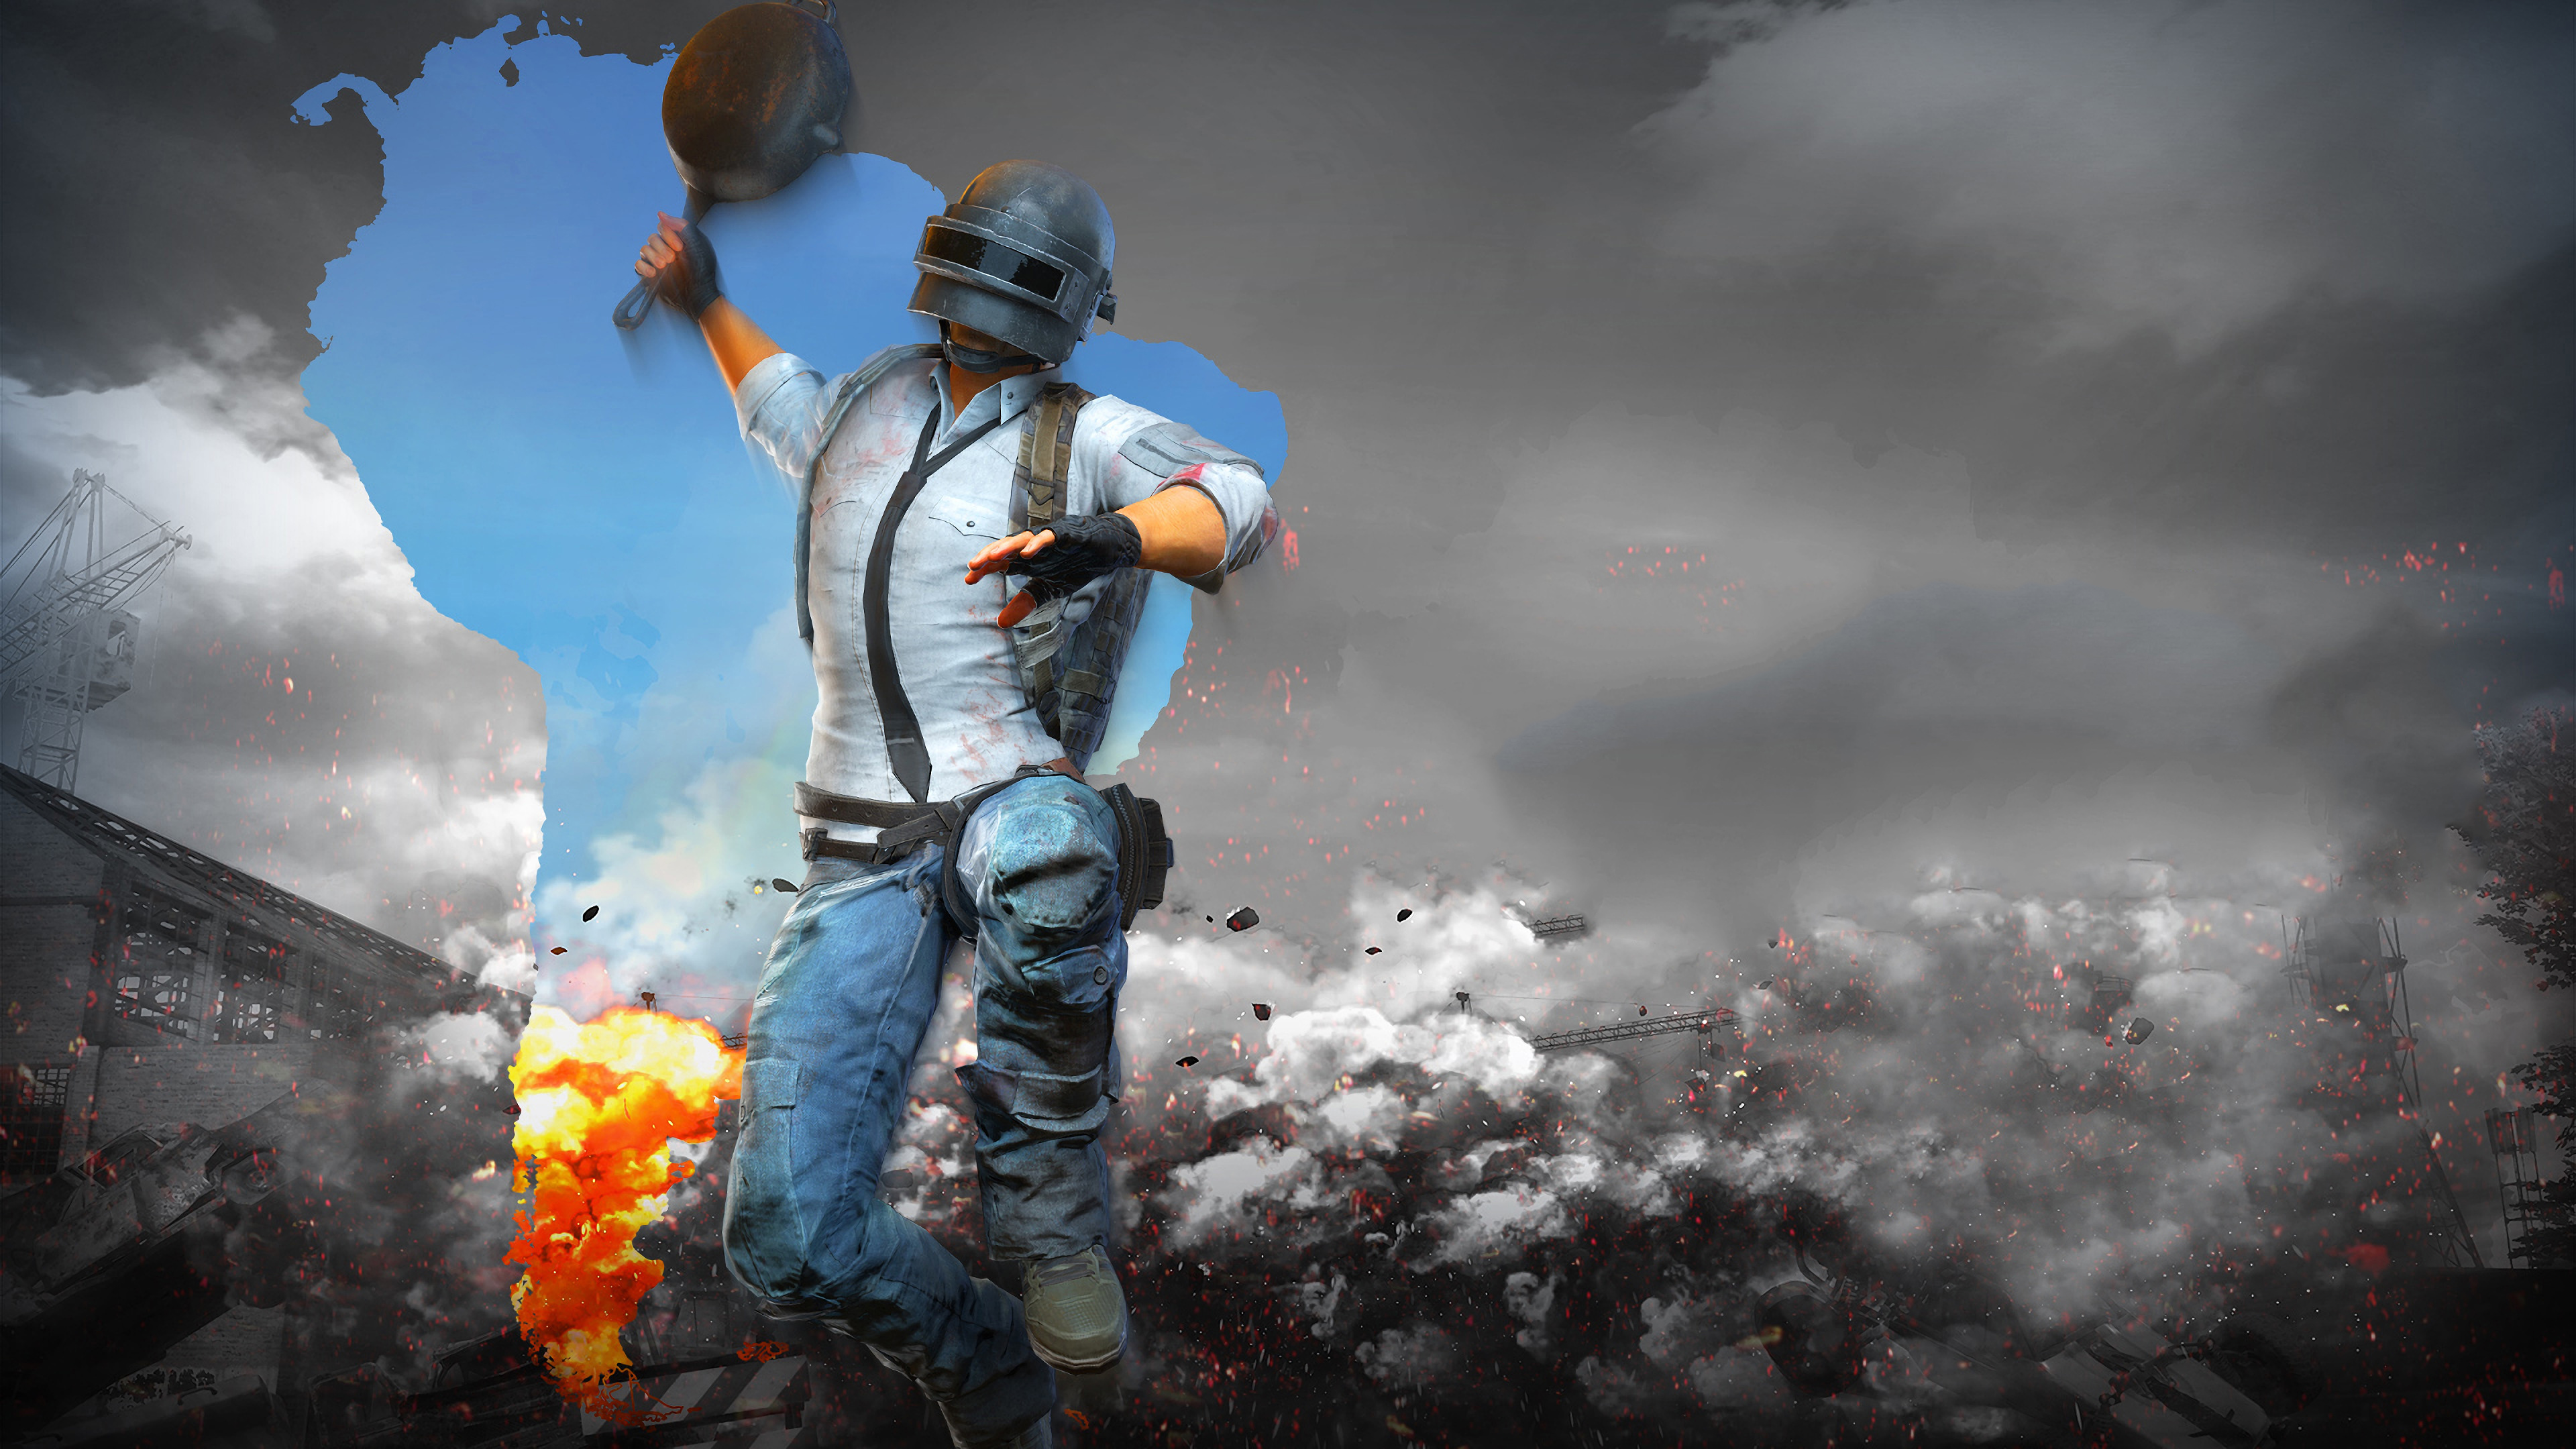 Pubg Helmet Guy 4k Pubg Wallpapers Playerunknowns: PUBG Helmet Man With Pan 4k, HD Games, 4k Wallpapers